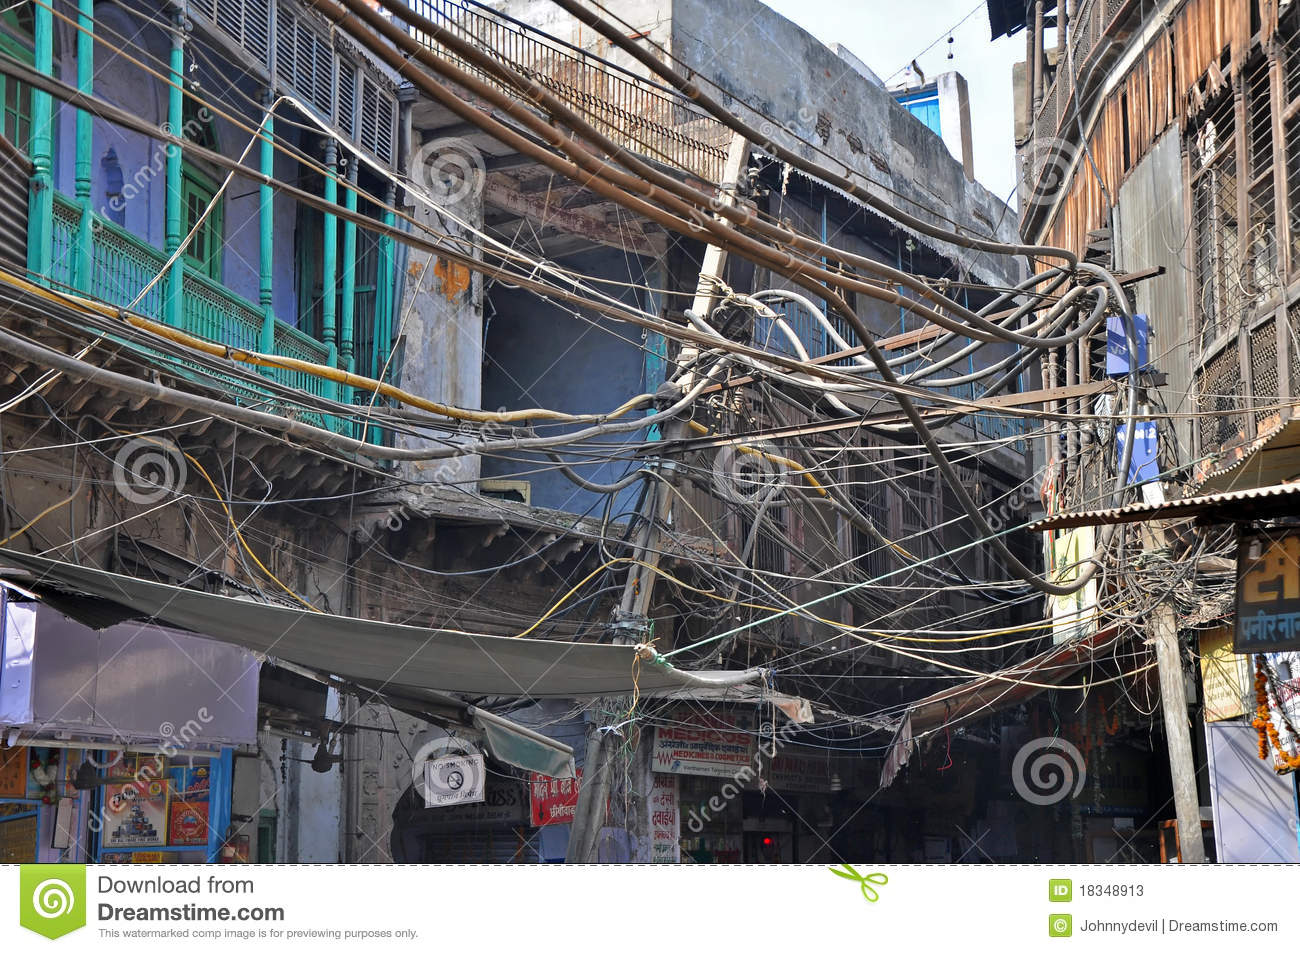 electrical wiring in india editorial stock photo image of chaos rh dreamstime com India Electricity India Phone Lines